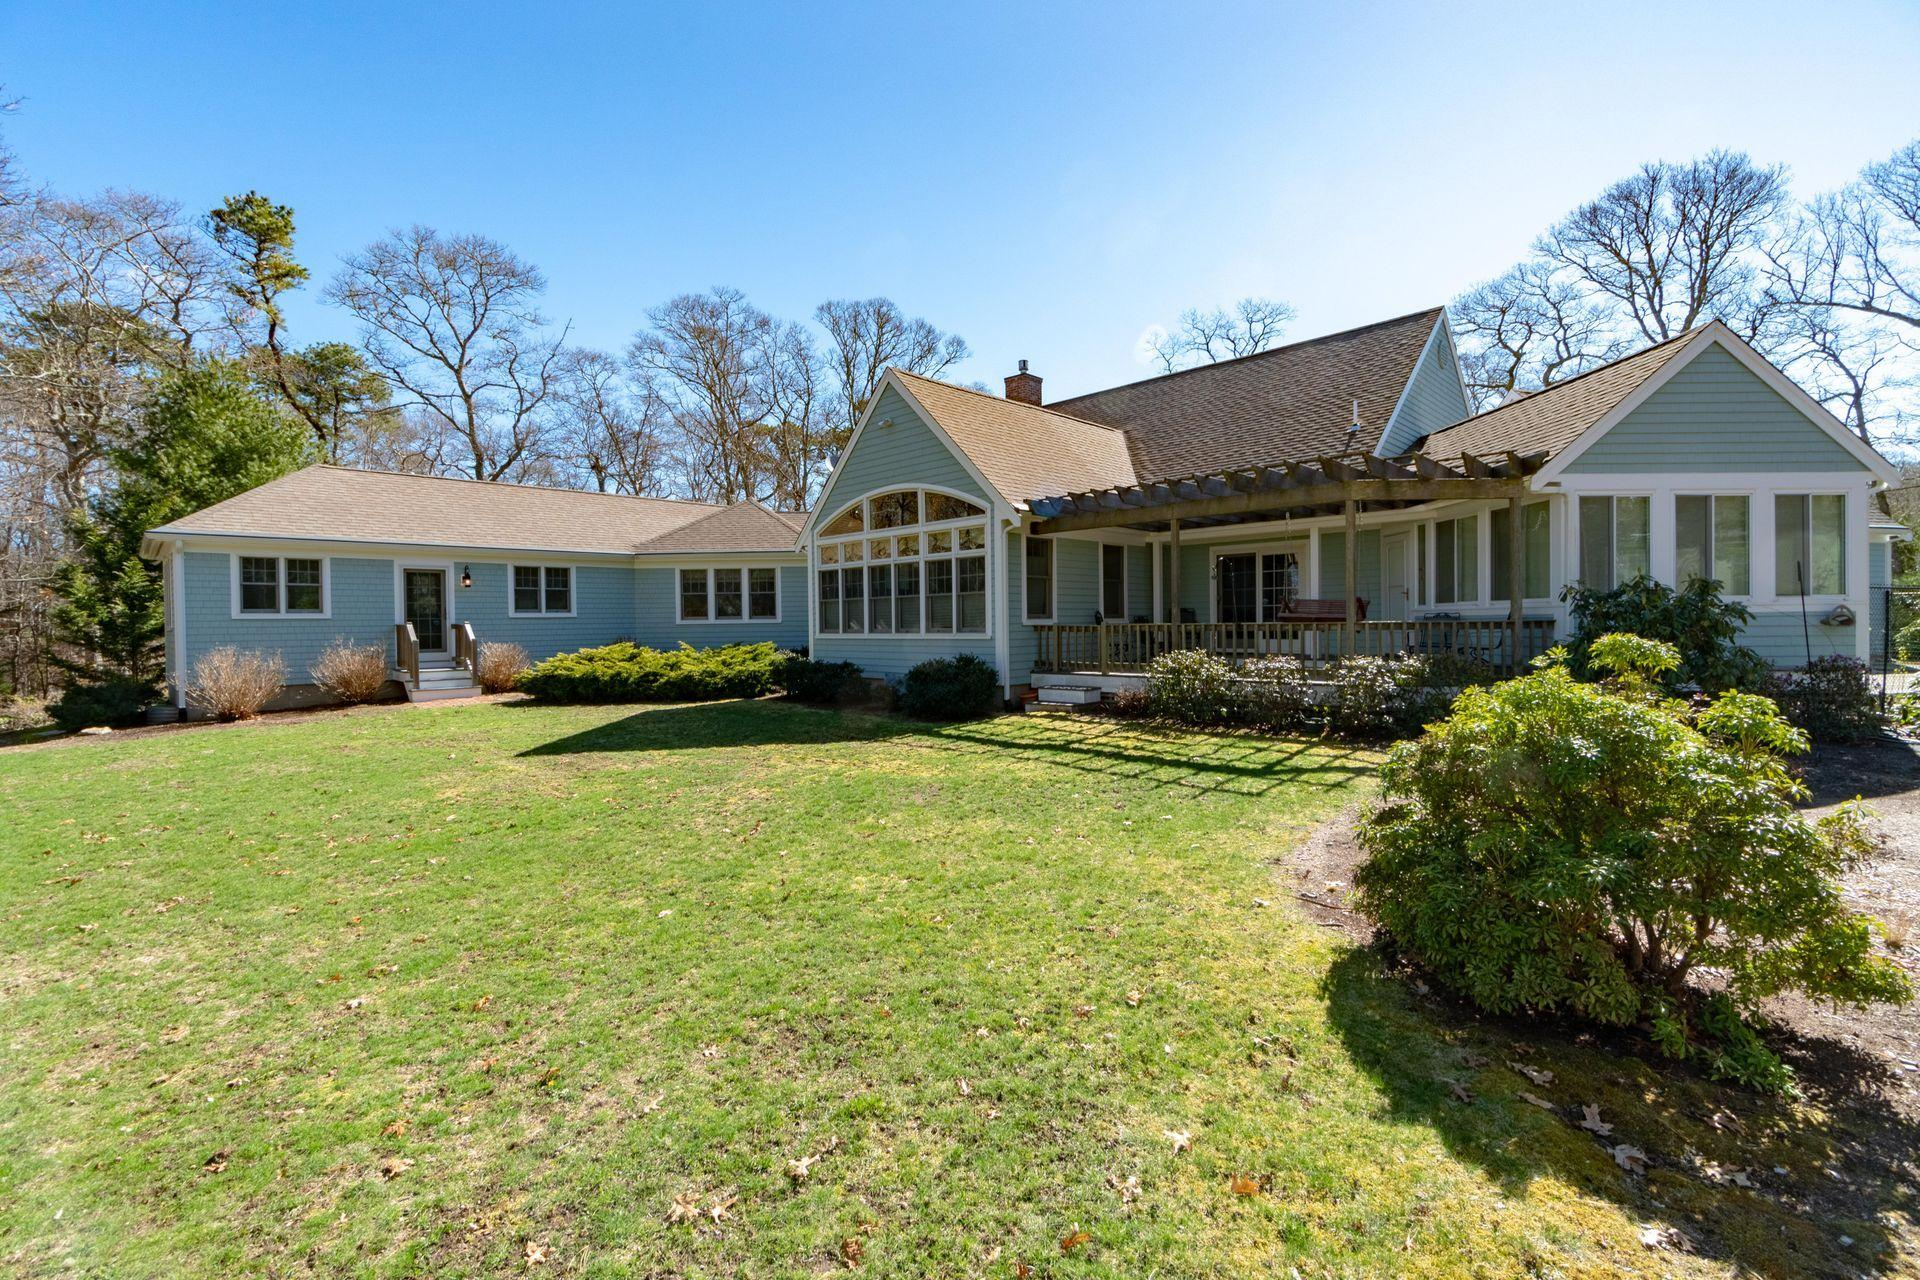 144 tonset road orleans ma 02653 property image 36